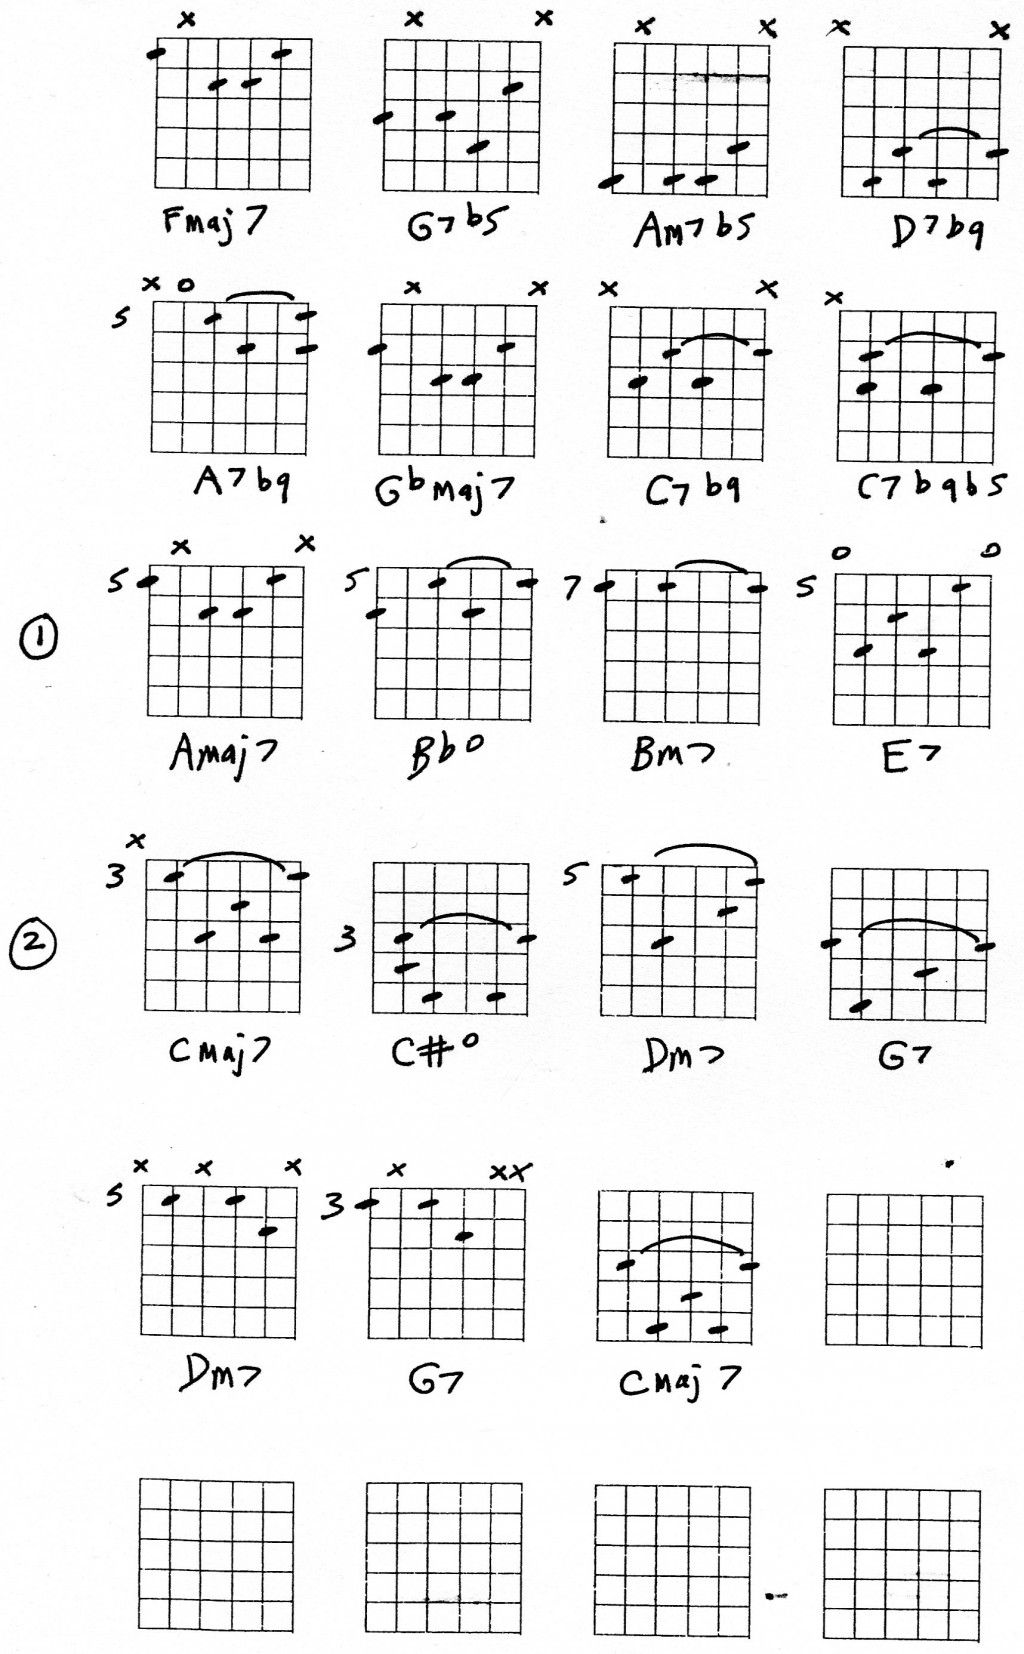 Guitar chords lesson on latin jazz chords bossa nova chords guitar chords lesson on latin jazz chords bossa nova chords hexwebz Choice Image